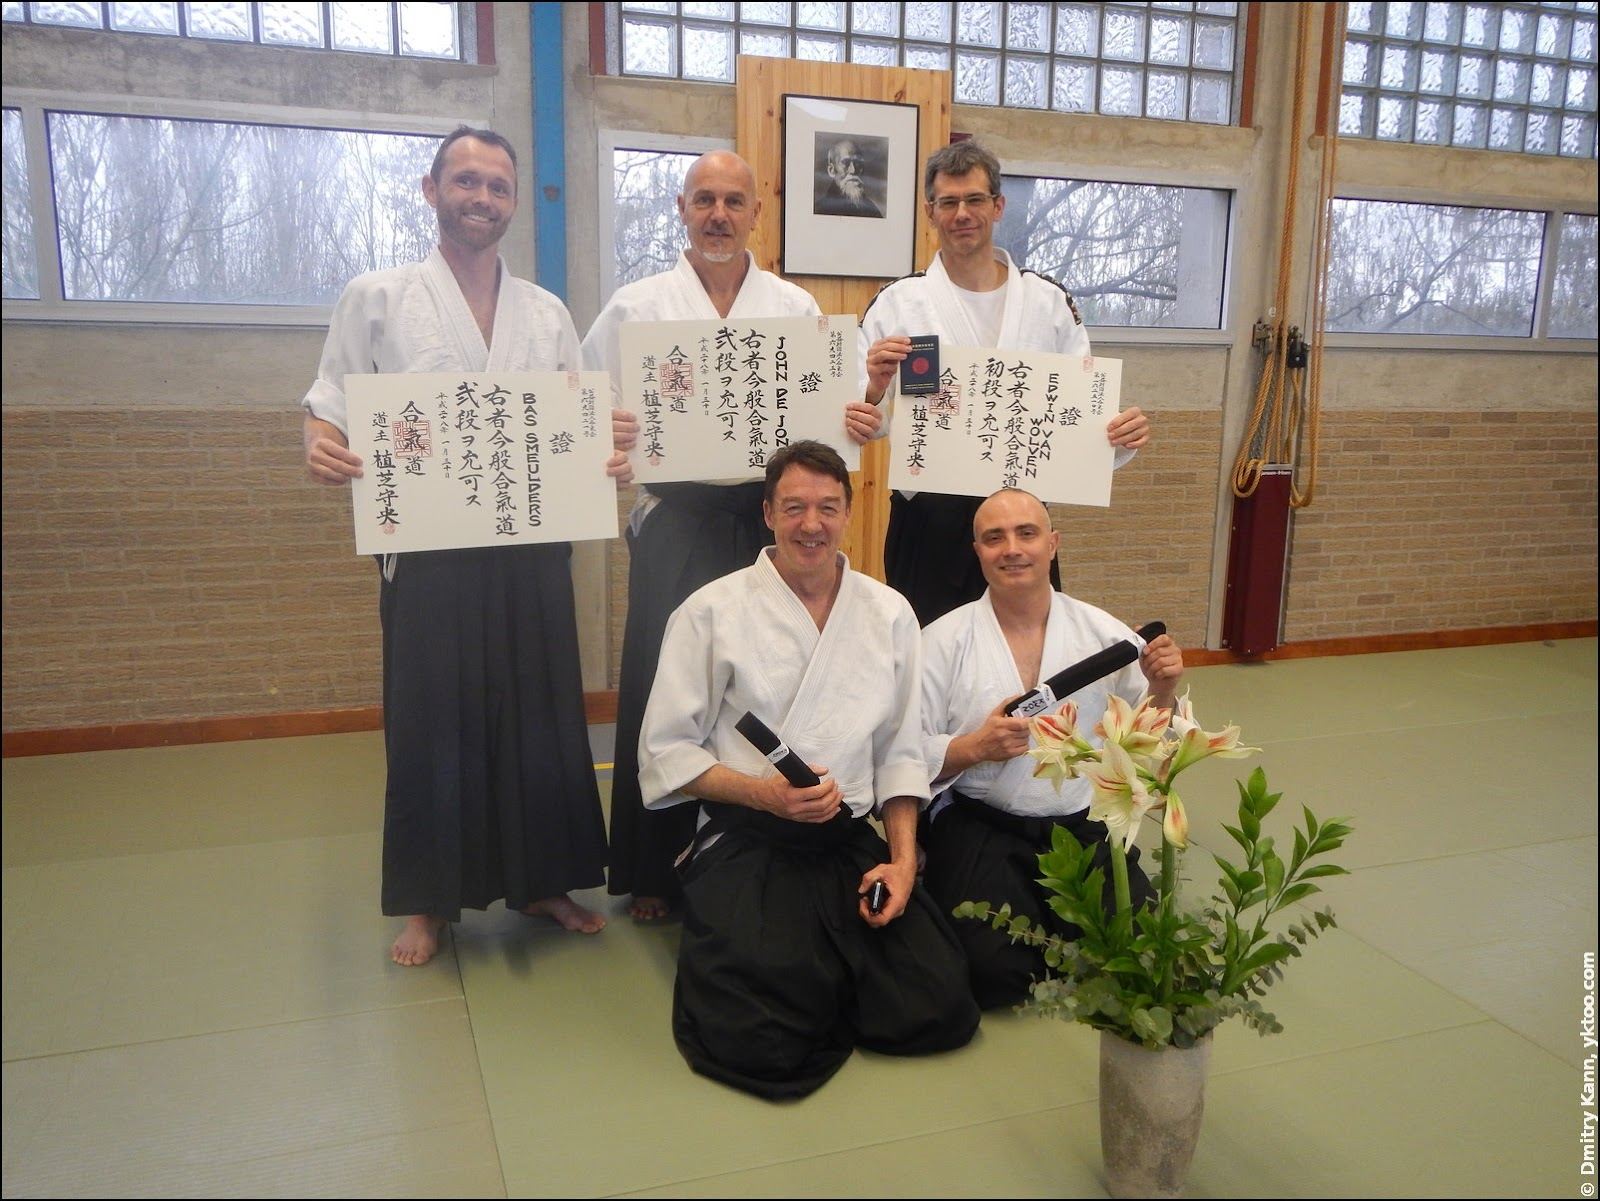 Left to right, top row: Bas Smeulders, John de Jong, Edwin van Wolven. Bottom row: Martijn Bakker and myself.